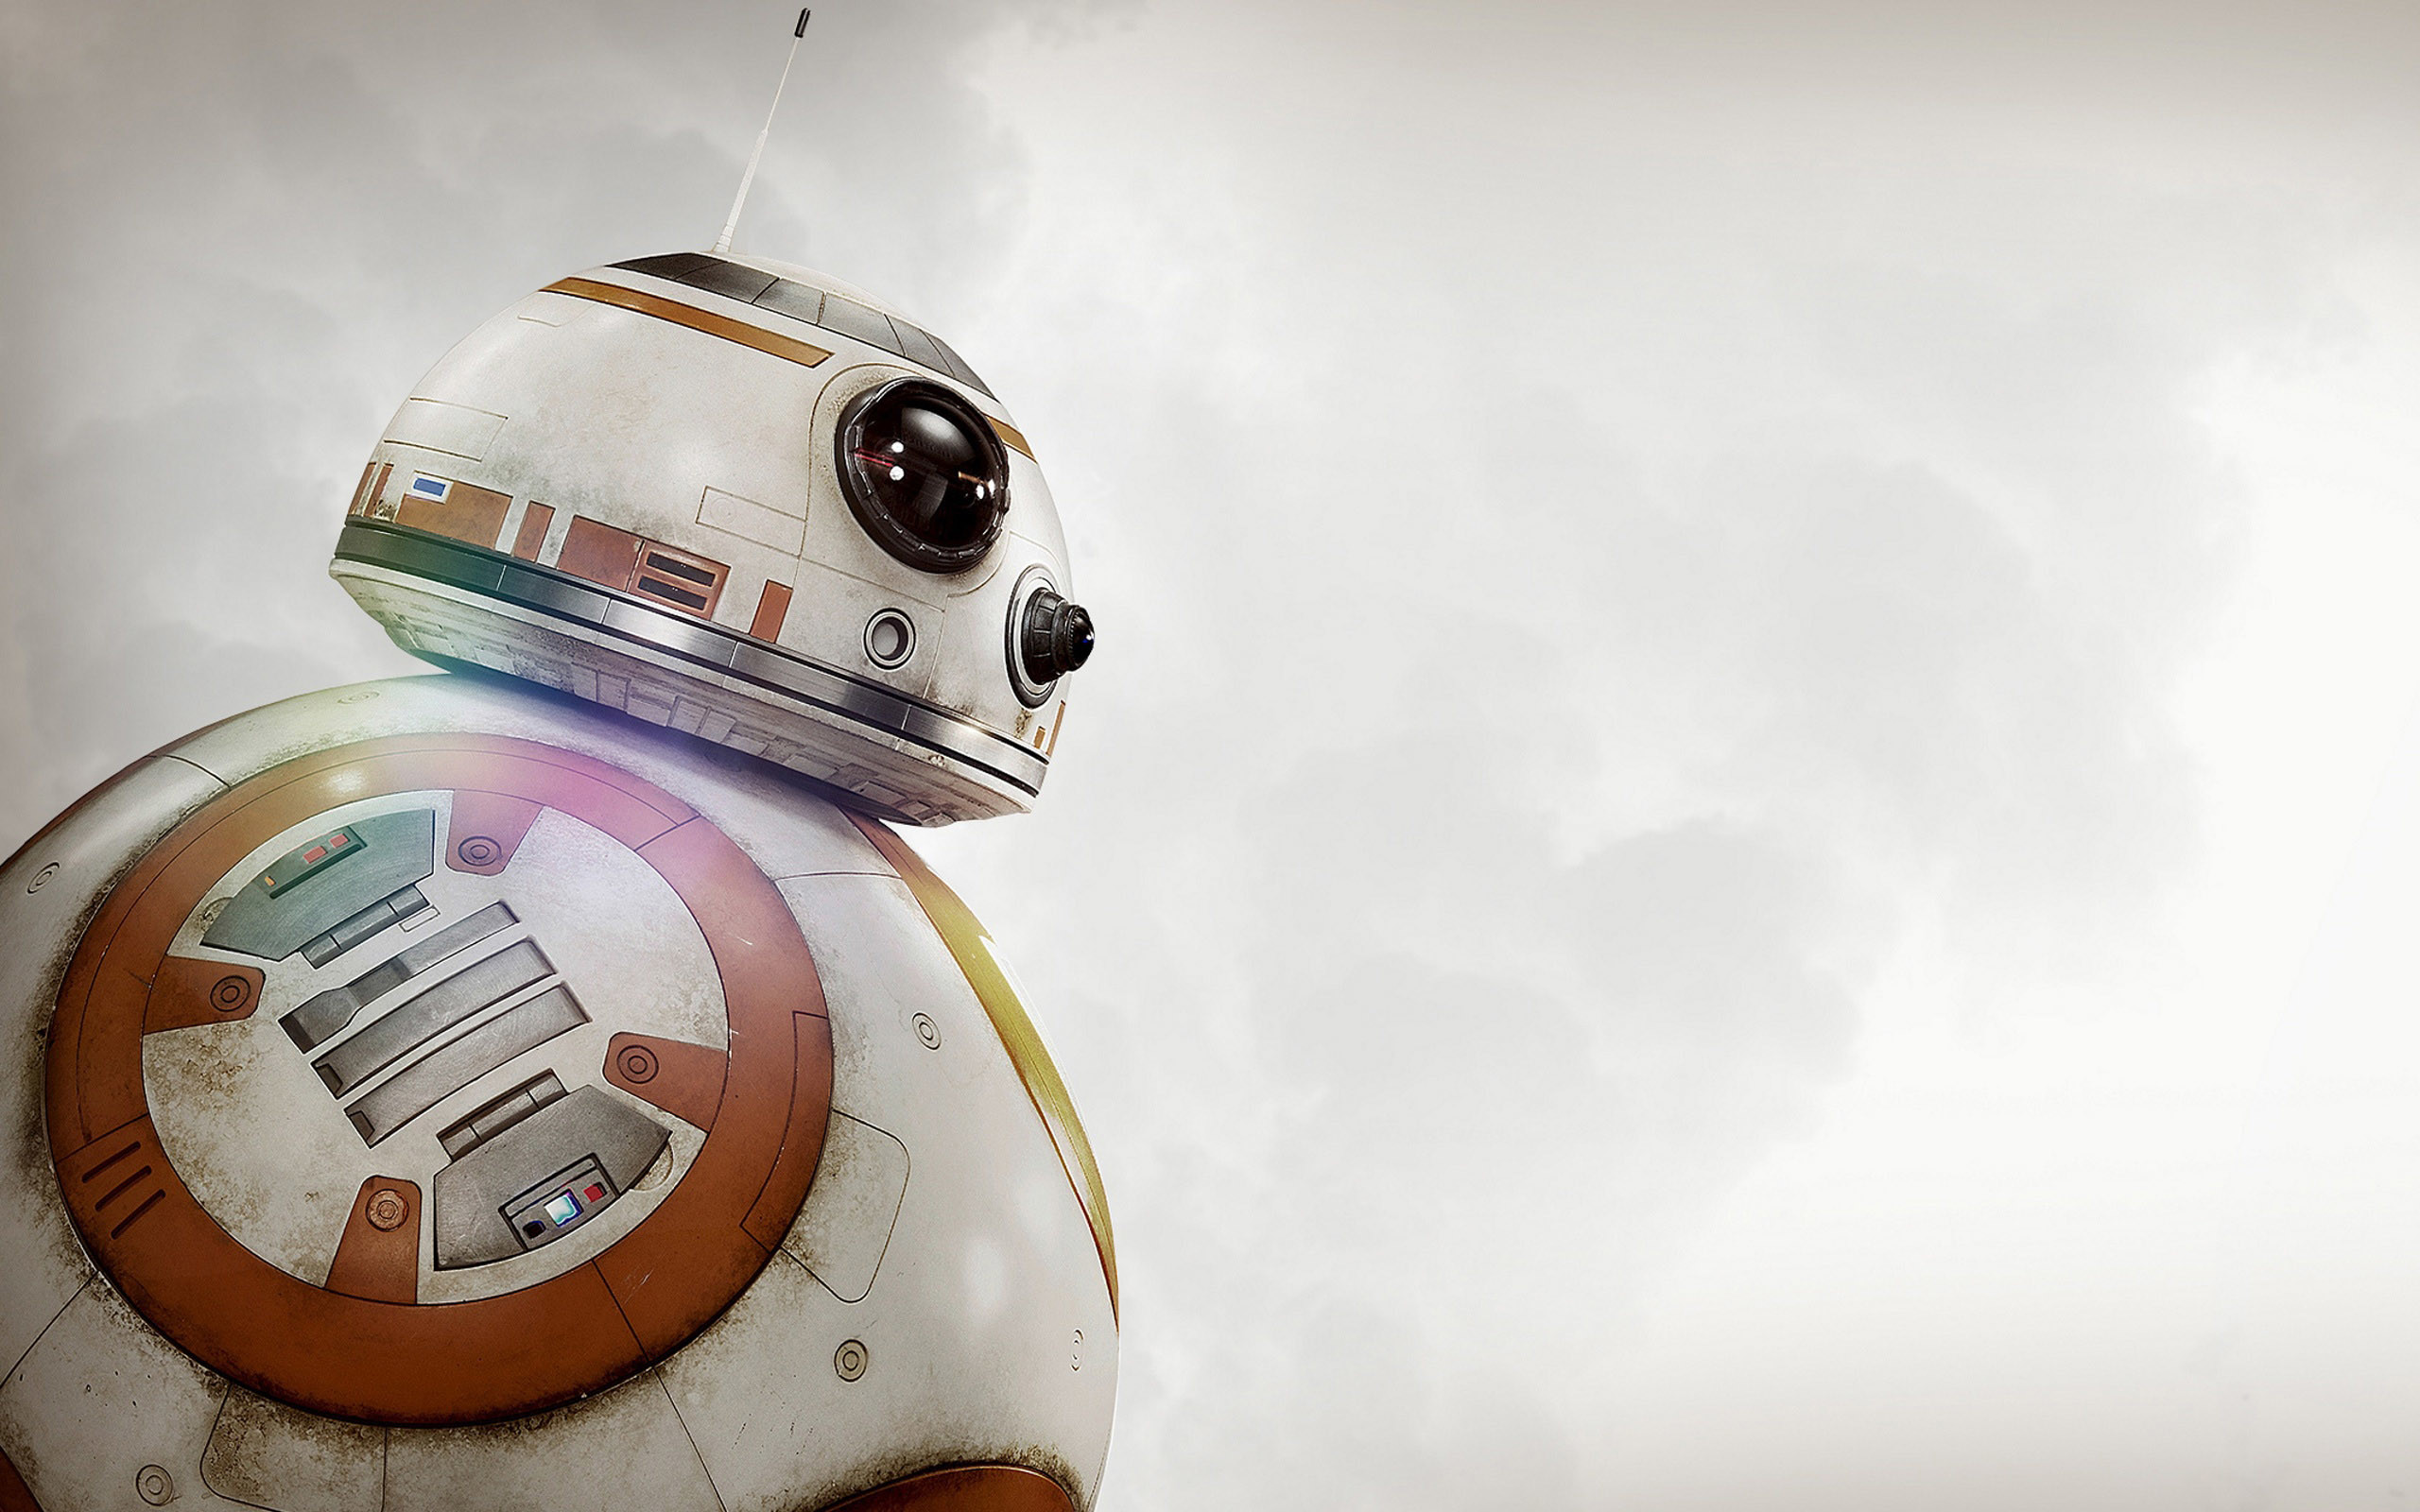 2560x1600 Star Wars The Force Awakens Wallpapers Photo